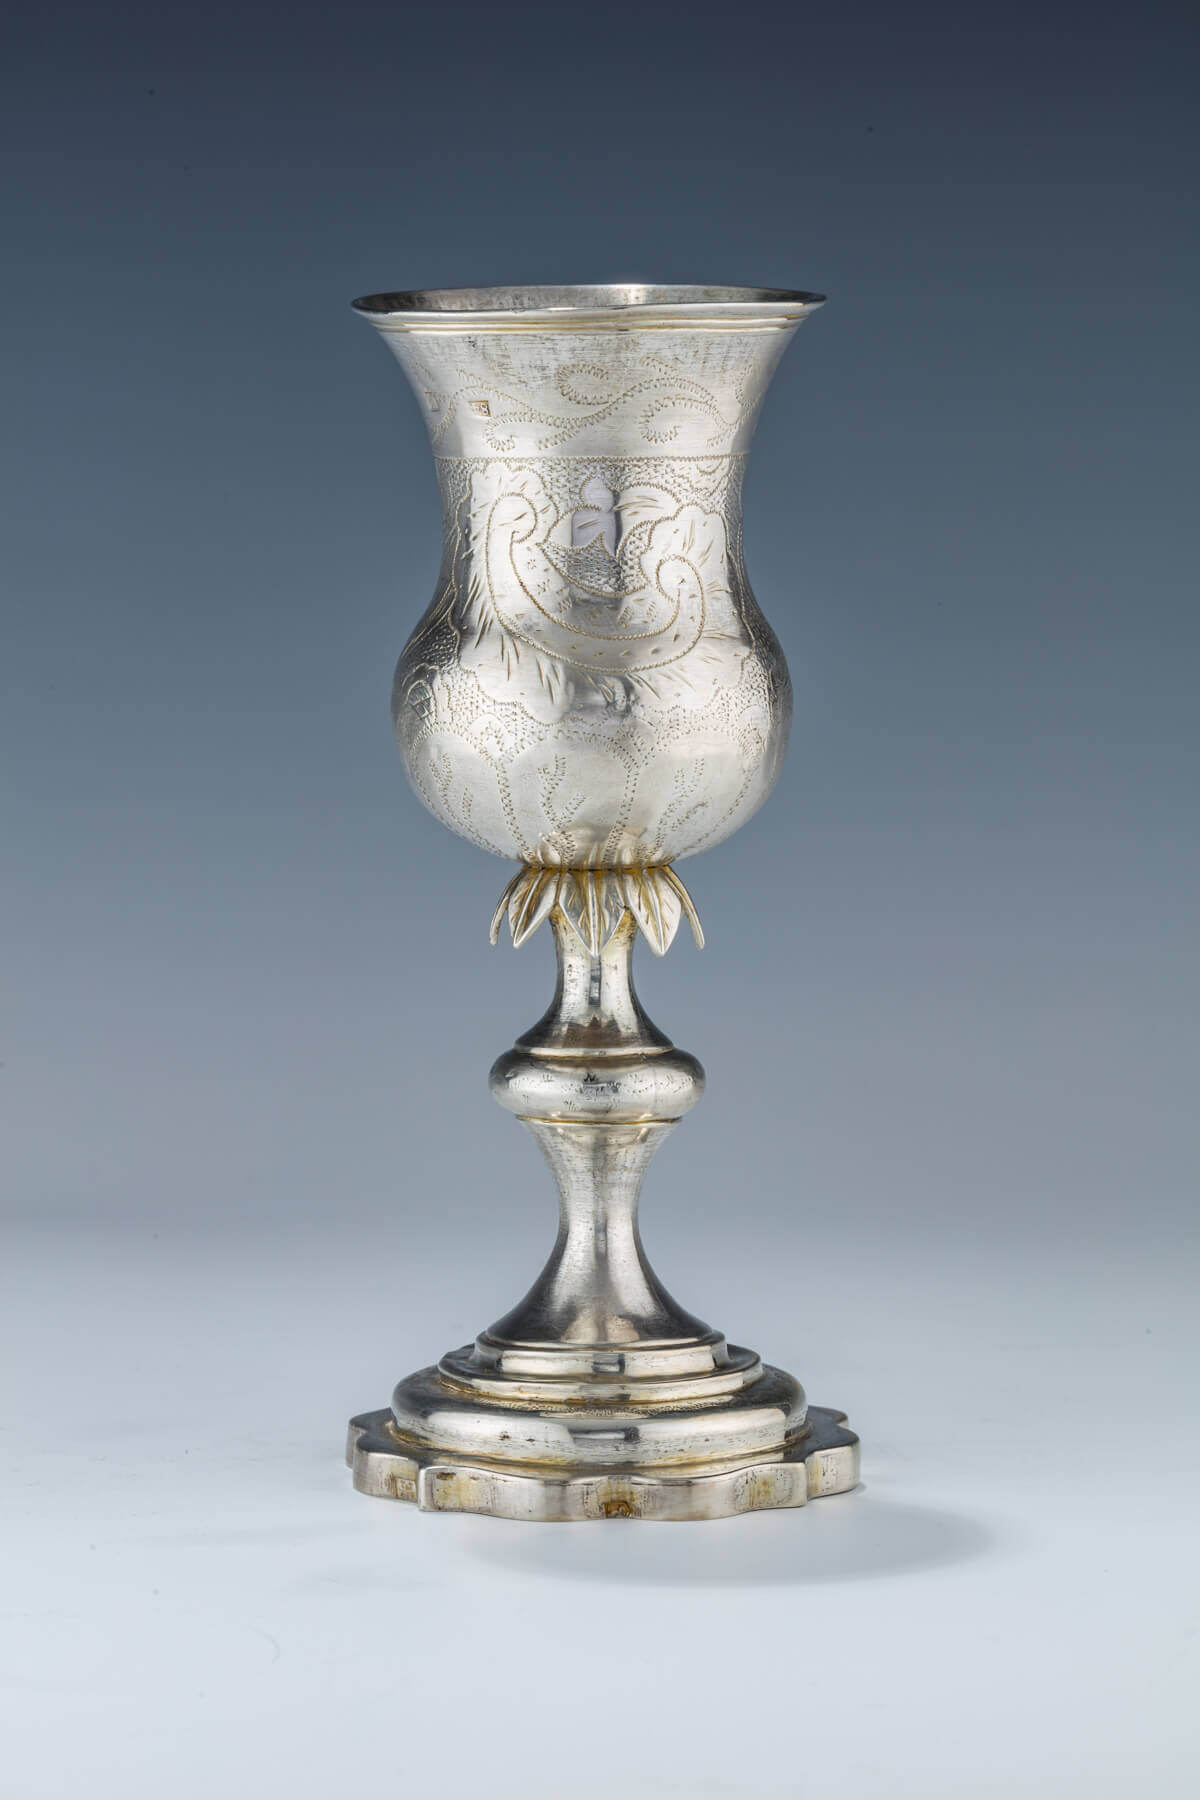 013. A LARGE SILVER KIDDUSH GOBLET